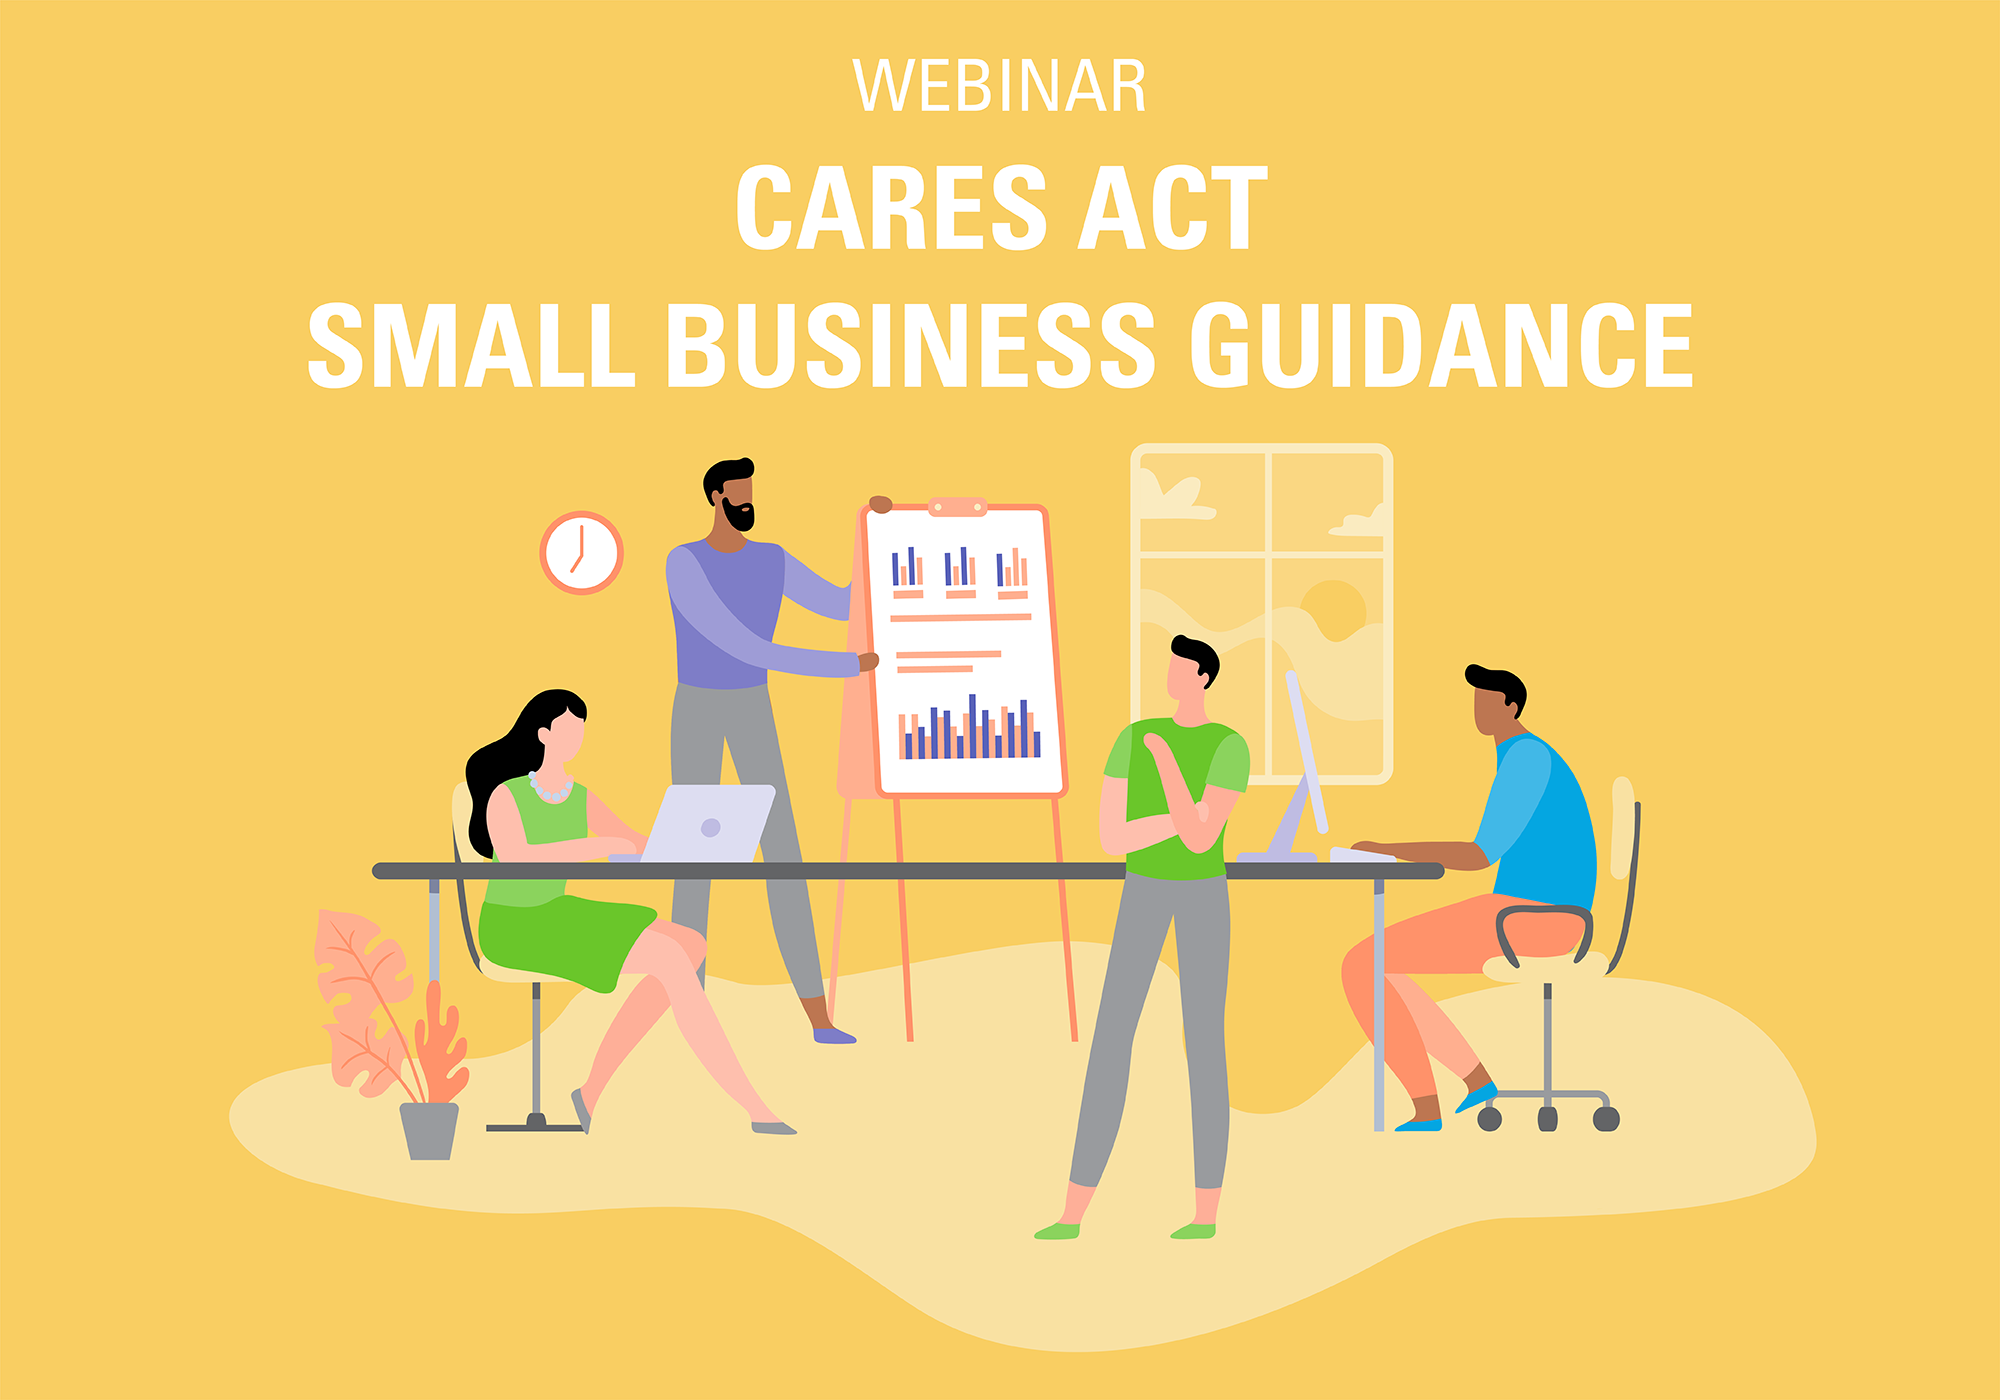 webinar cares act small business guidance